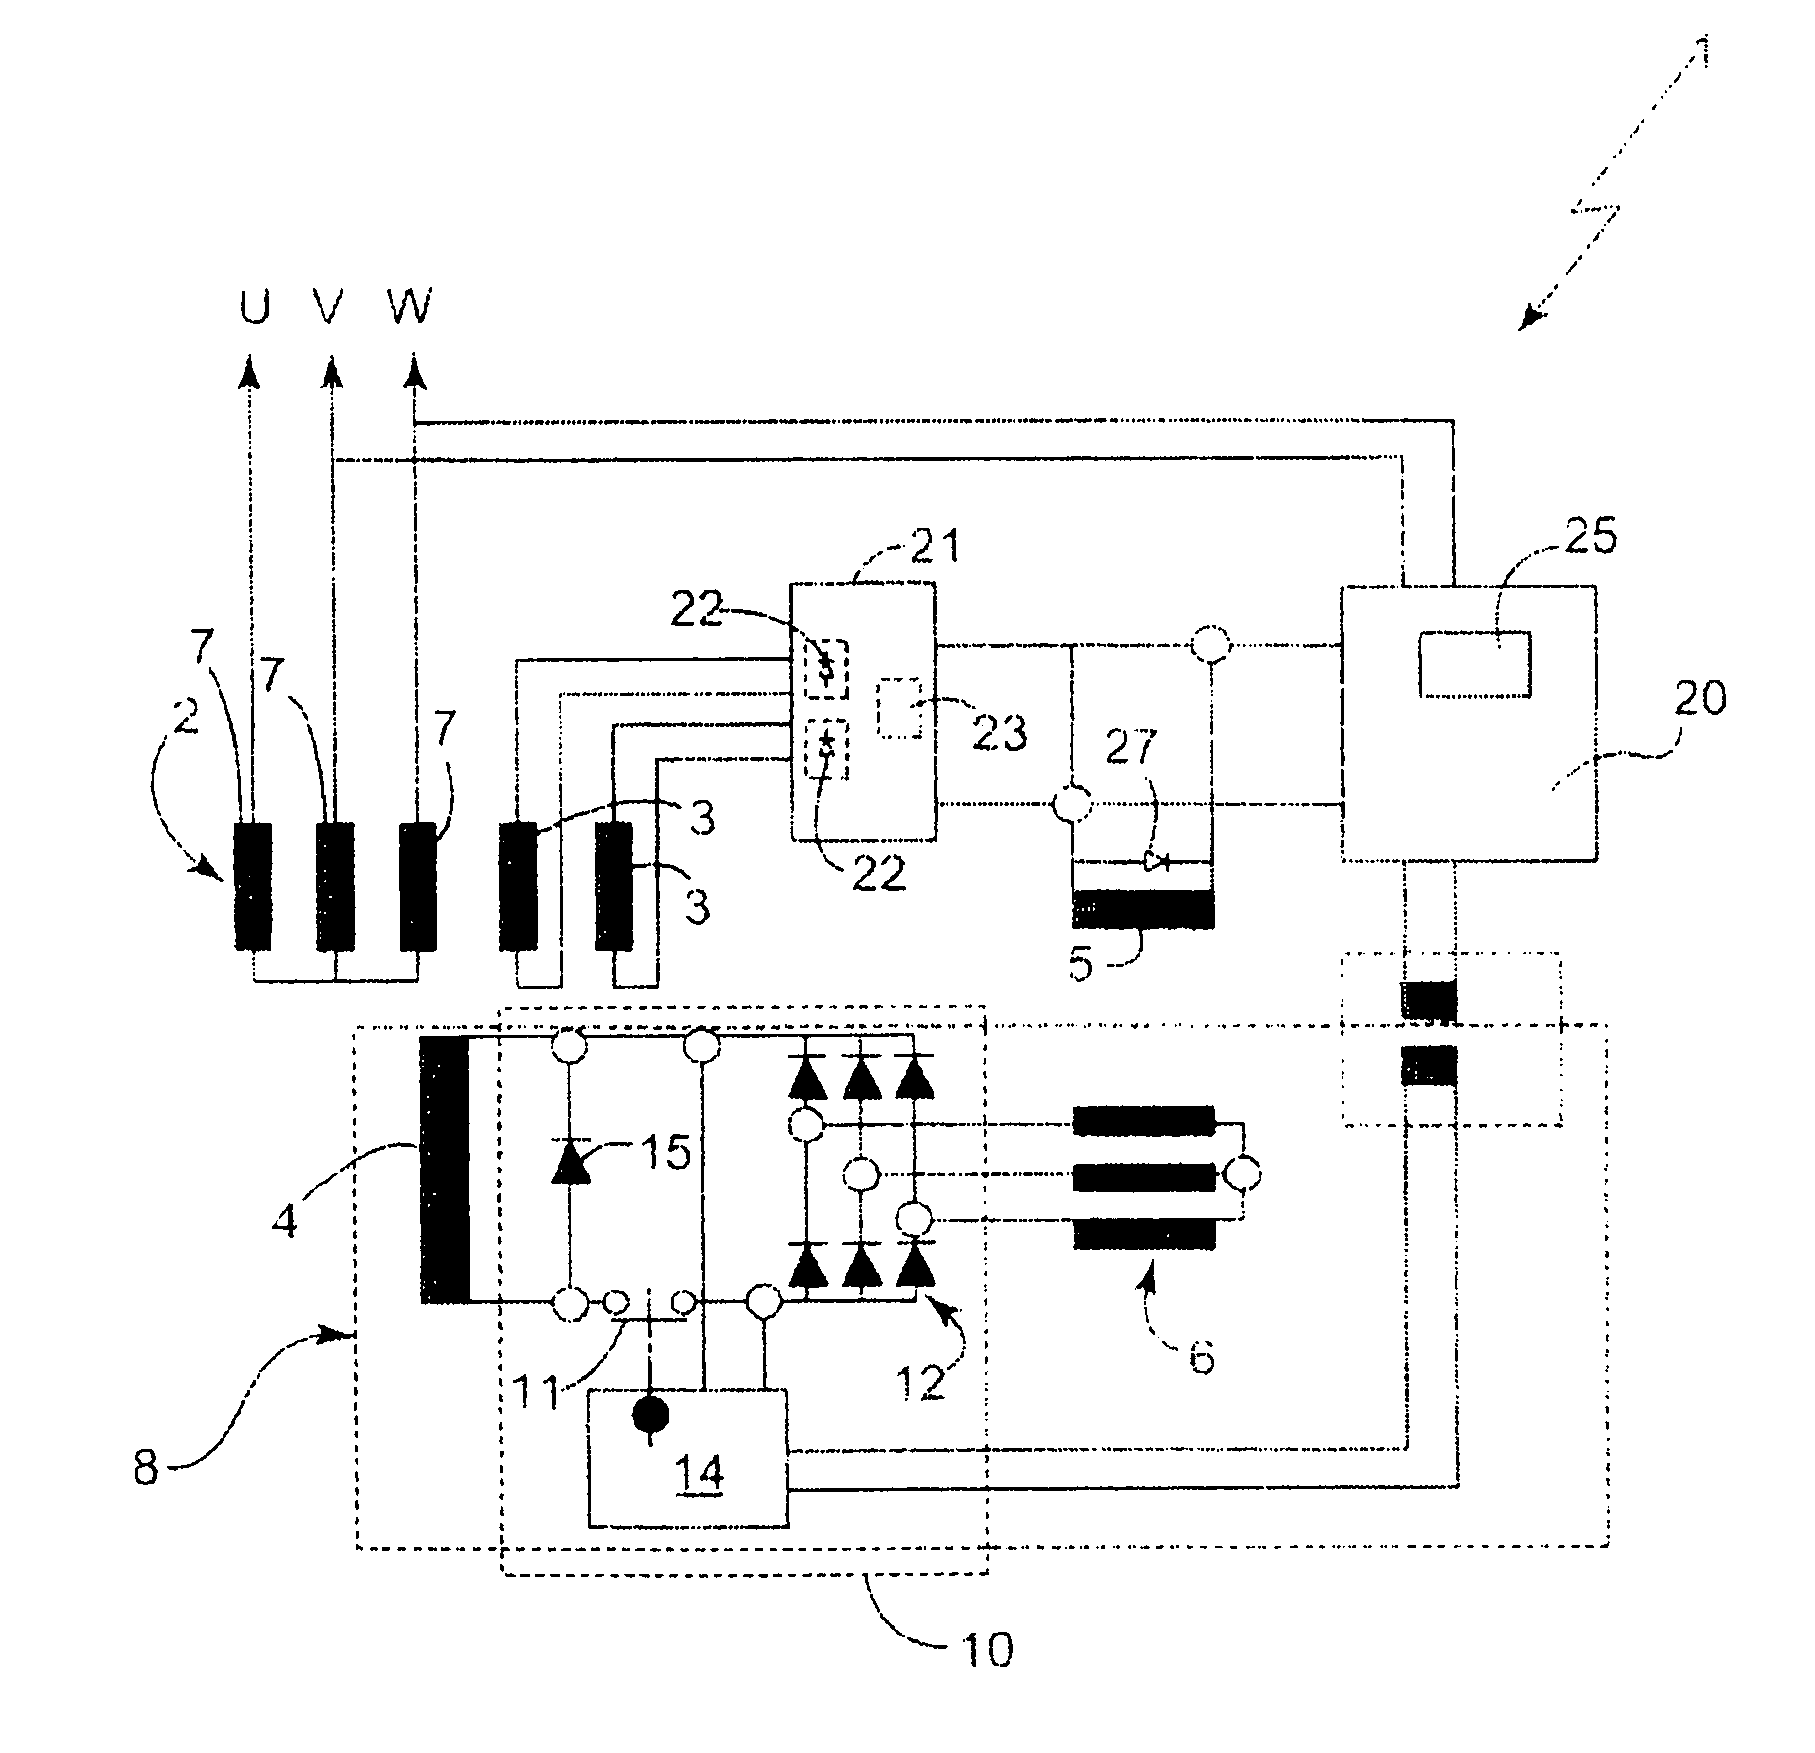 Leroy Somer Motor Wiring Diagram 32 Images Kel Alternator Patent Us8013578 Google Patents Us08013578 20110906 D00000 At Cita